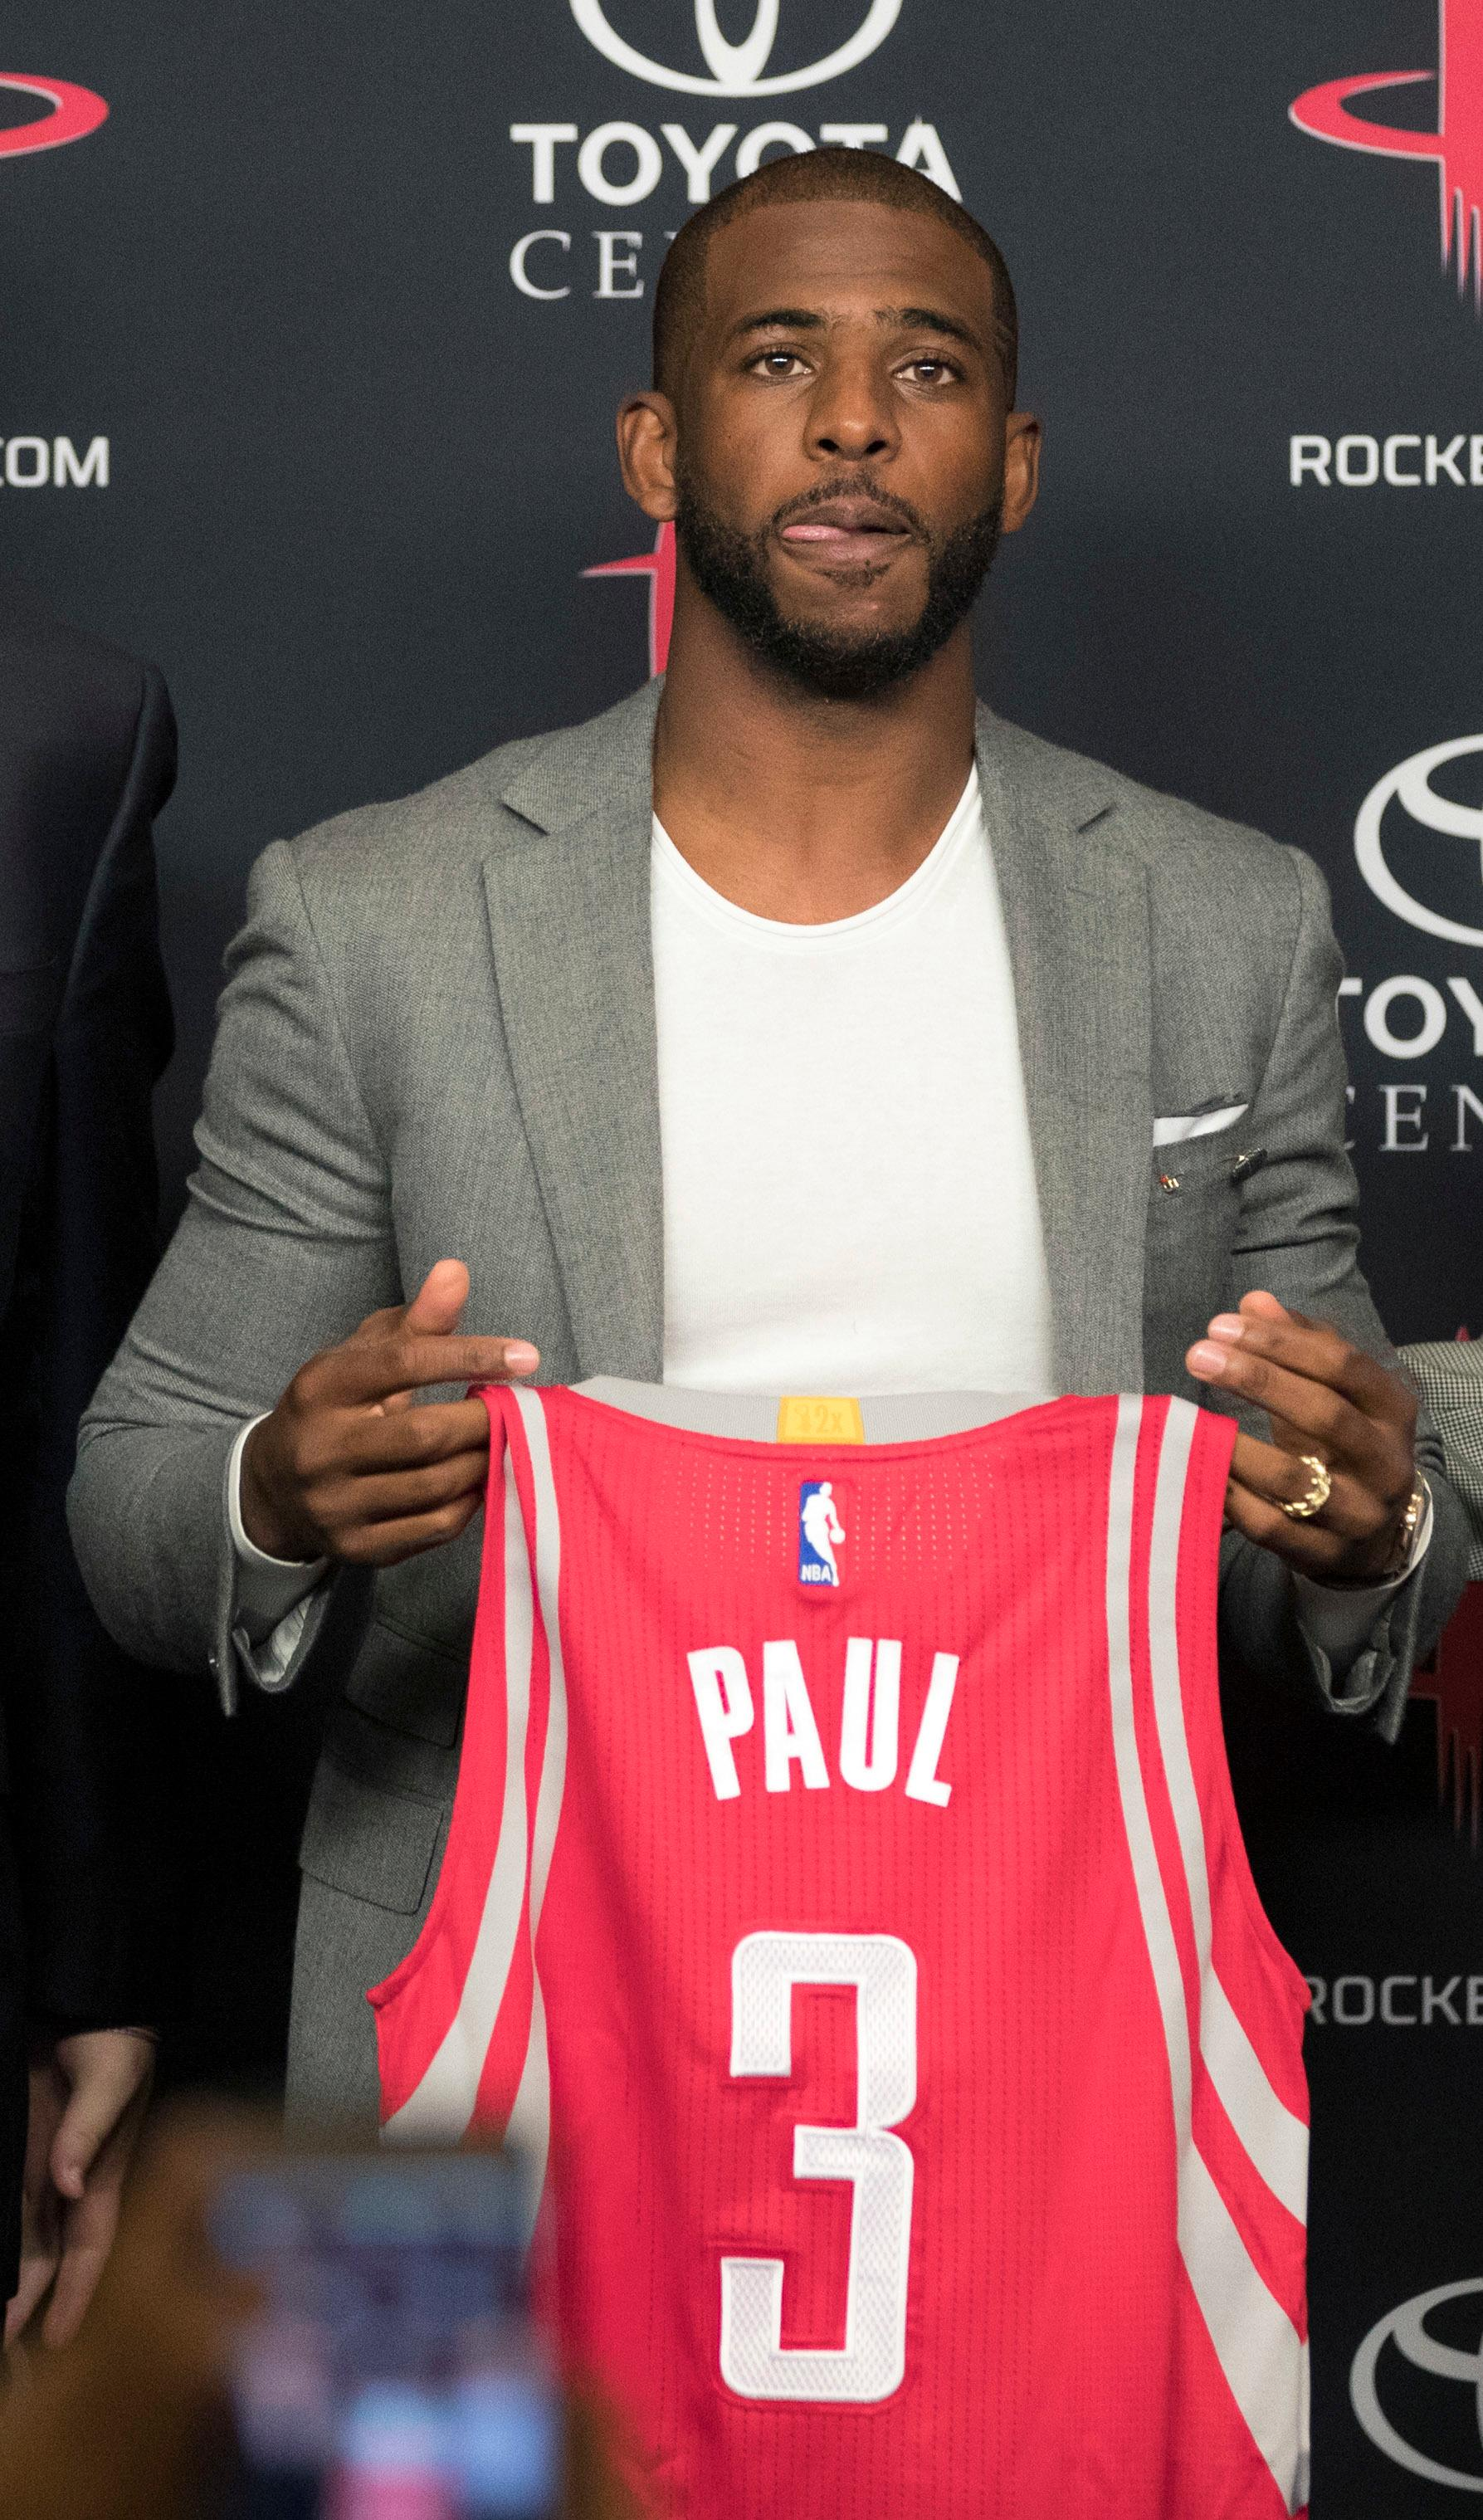 Chris Paul holds his new Houston Rockets jersey during a news conference Friday, July 14, 2017, in Houston. The nine-time All-Star was traded from the Los Angeles Clippers late last month. (AP Photo/David J. Phillip)